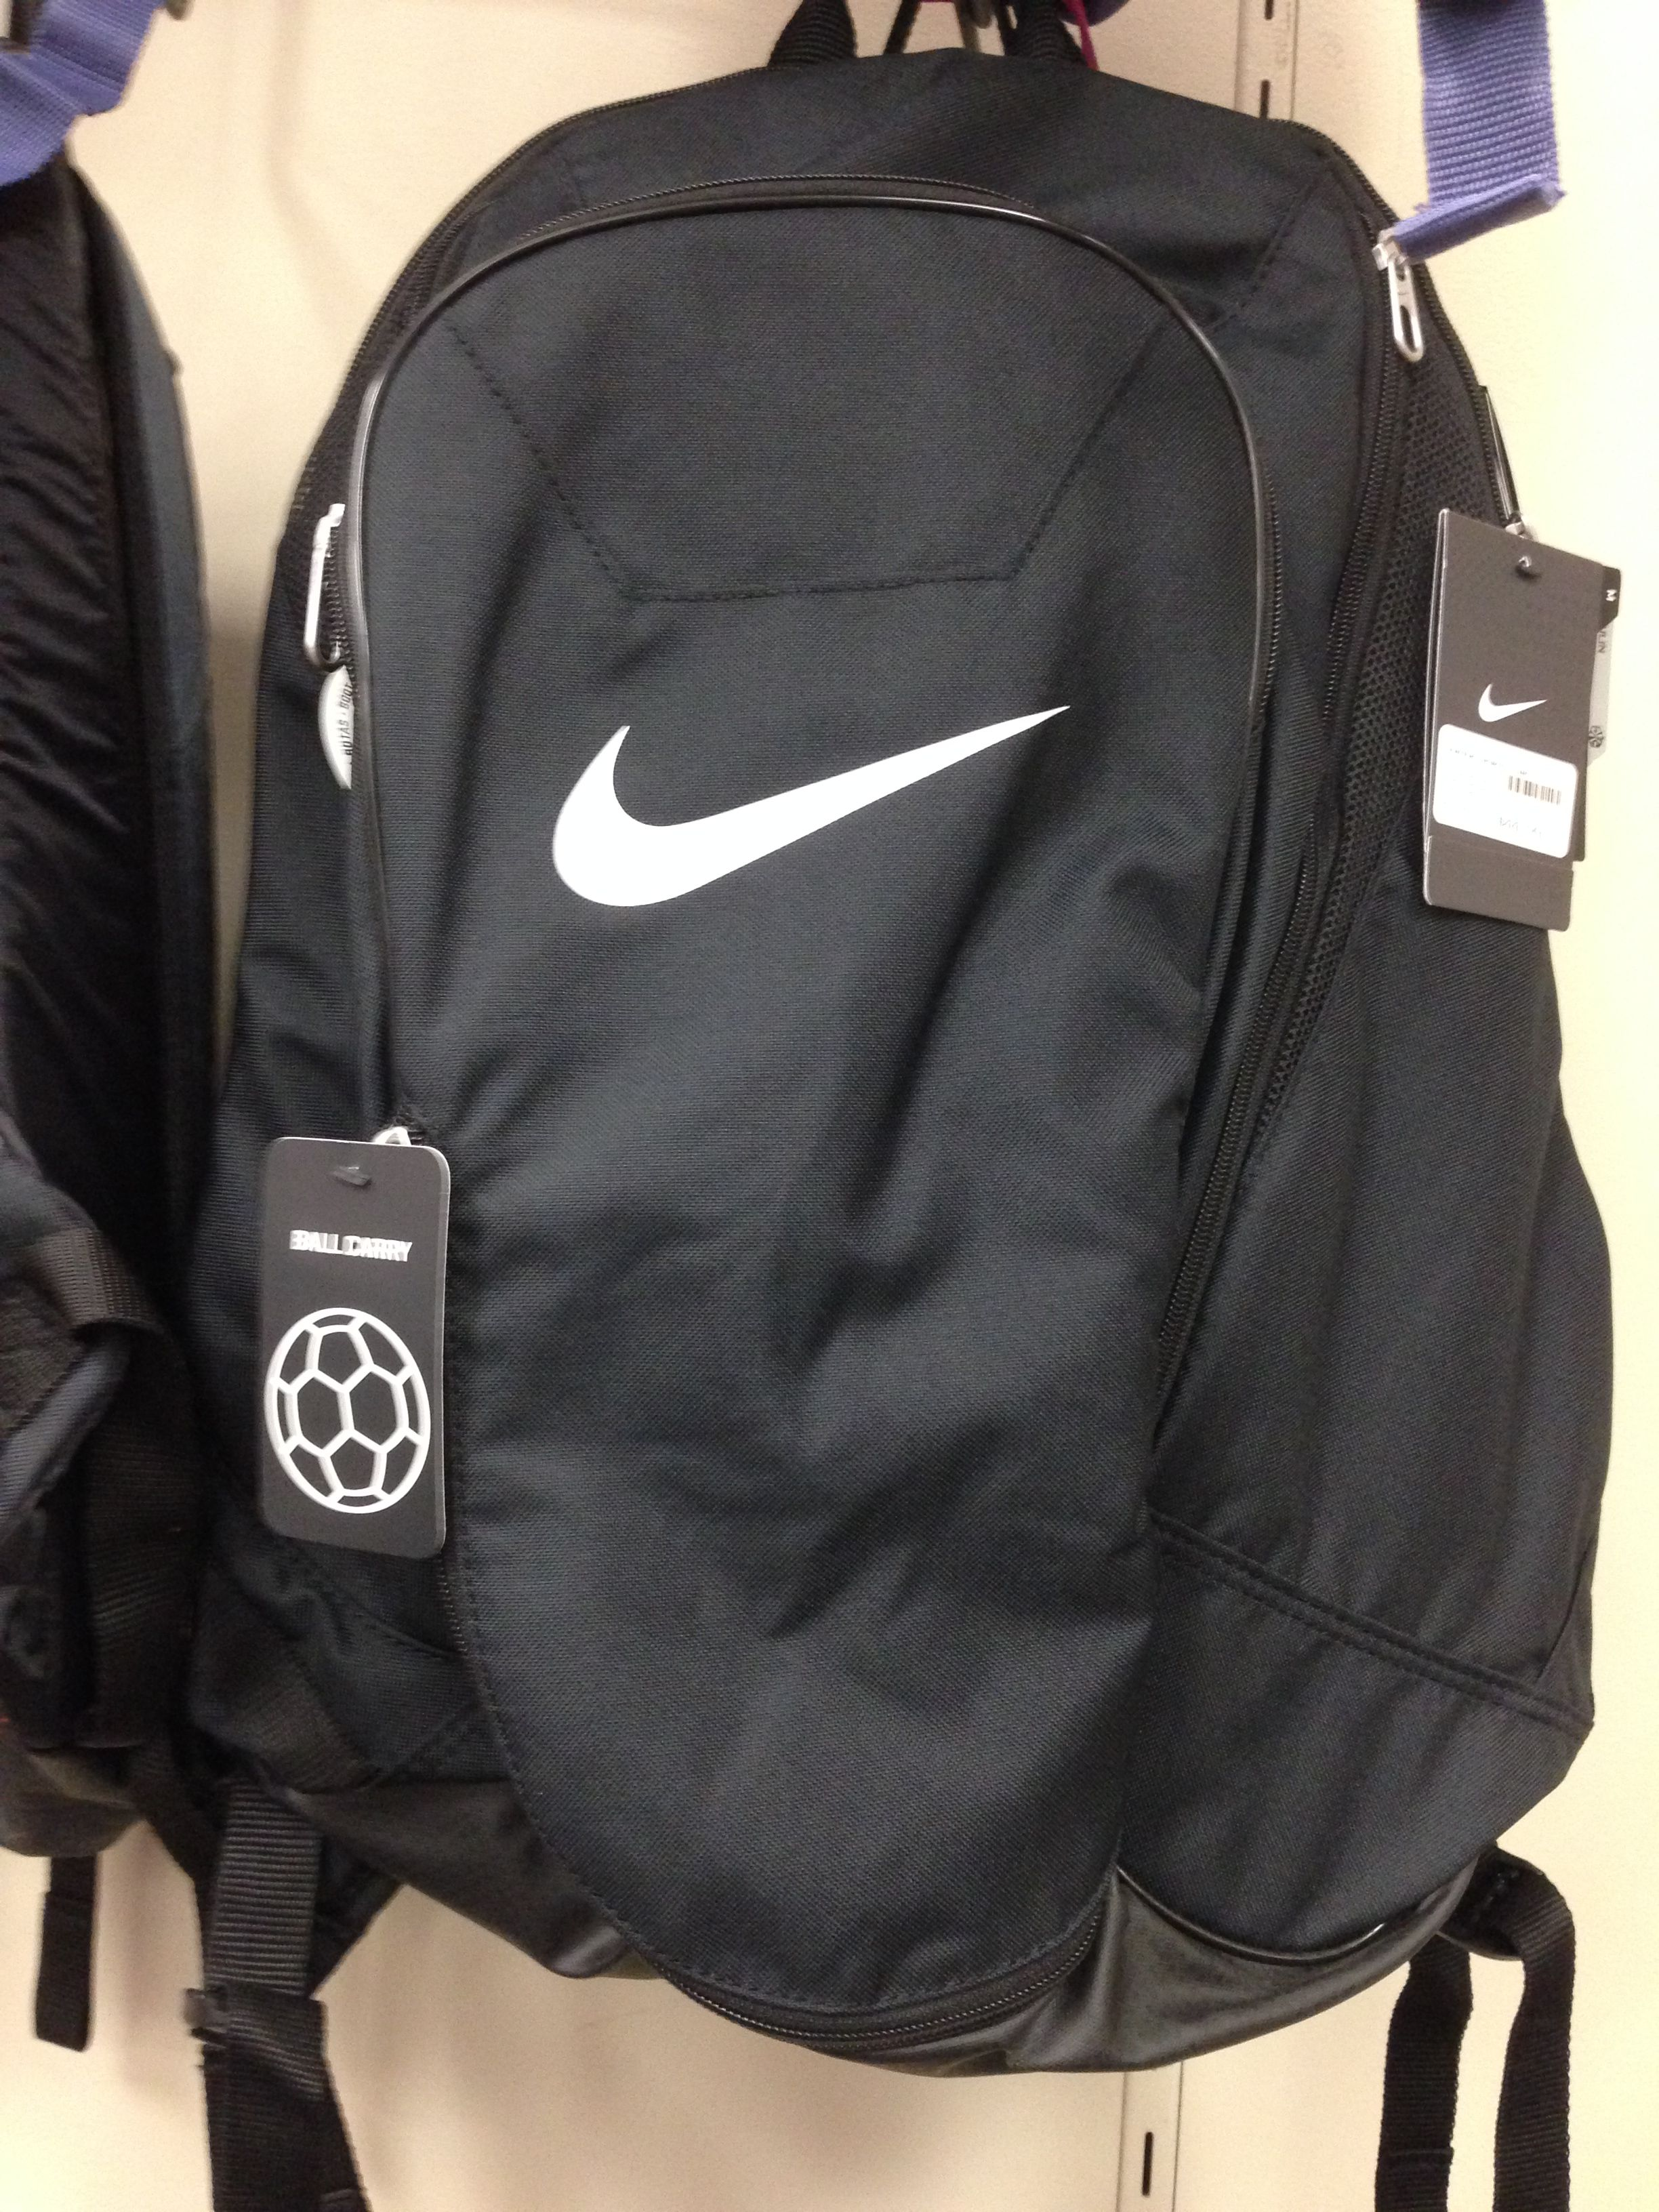 6b828c6dc Black Nike Soccer Backpack; Backpack with Ball Carry Compartment ...